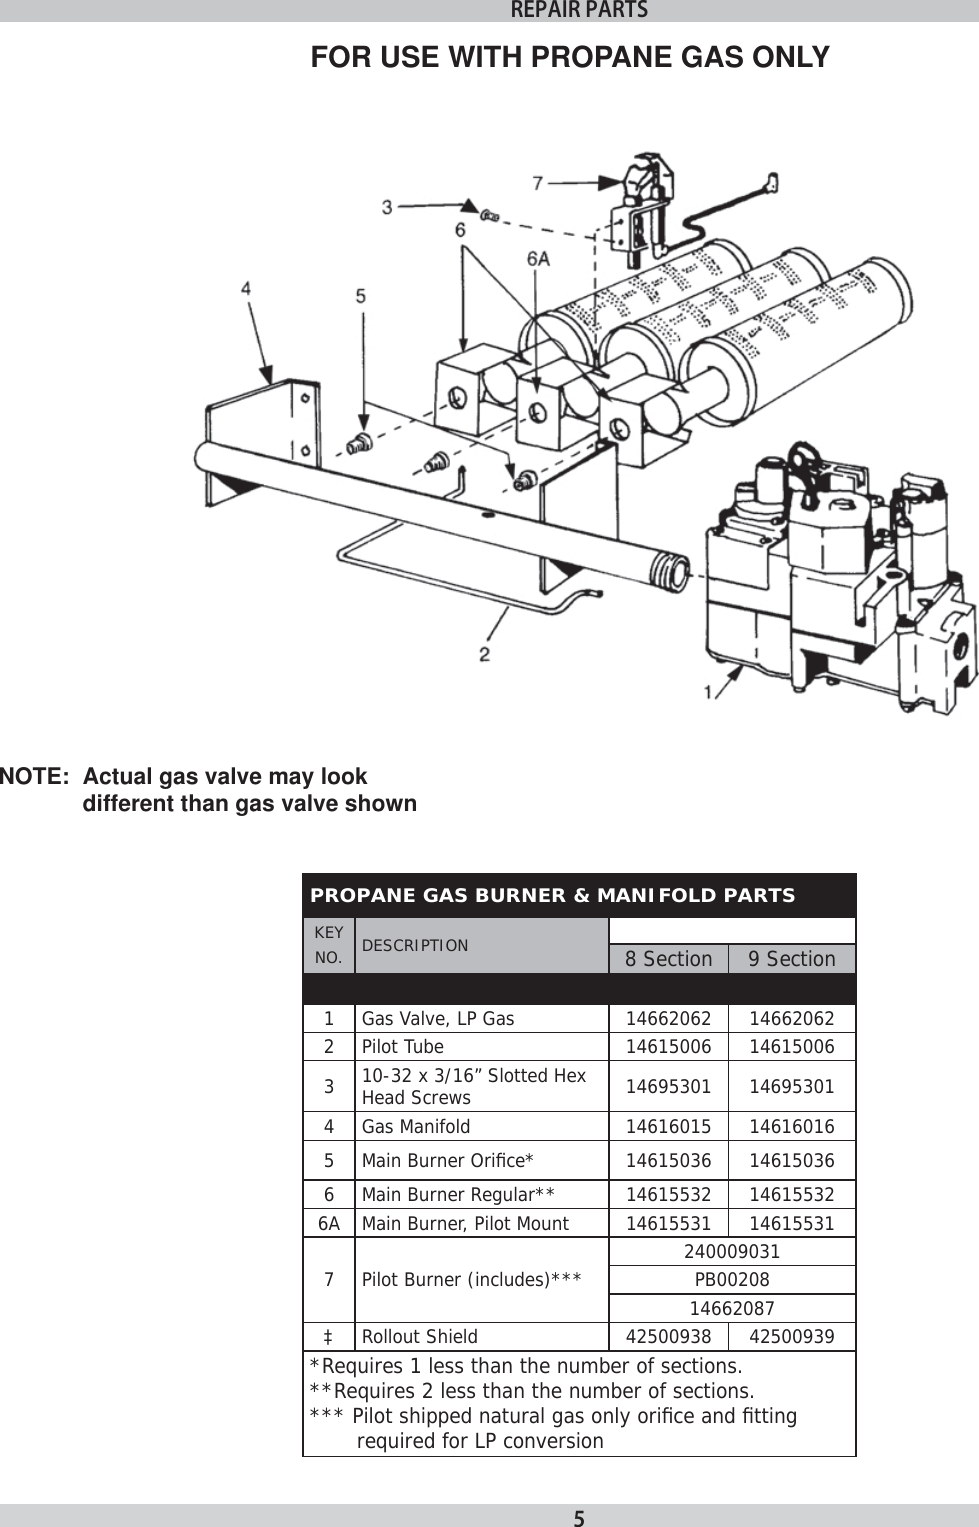 Utica Boilers Mgb Series Ii Mgc Parts List 240009272.indb